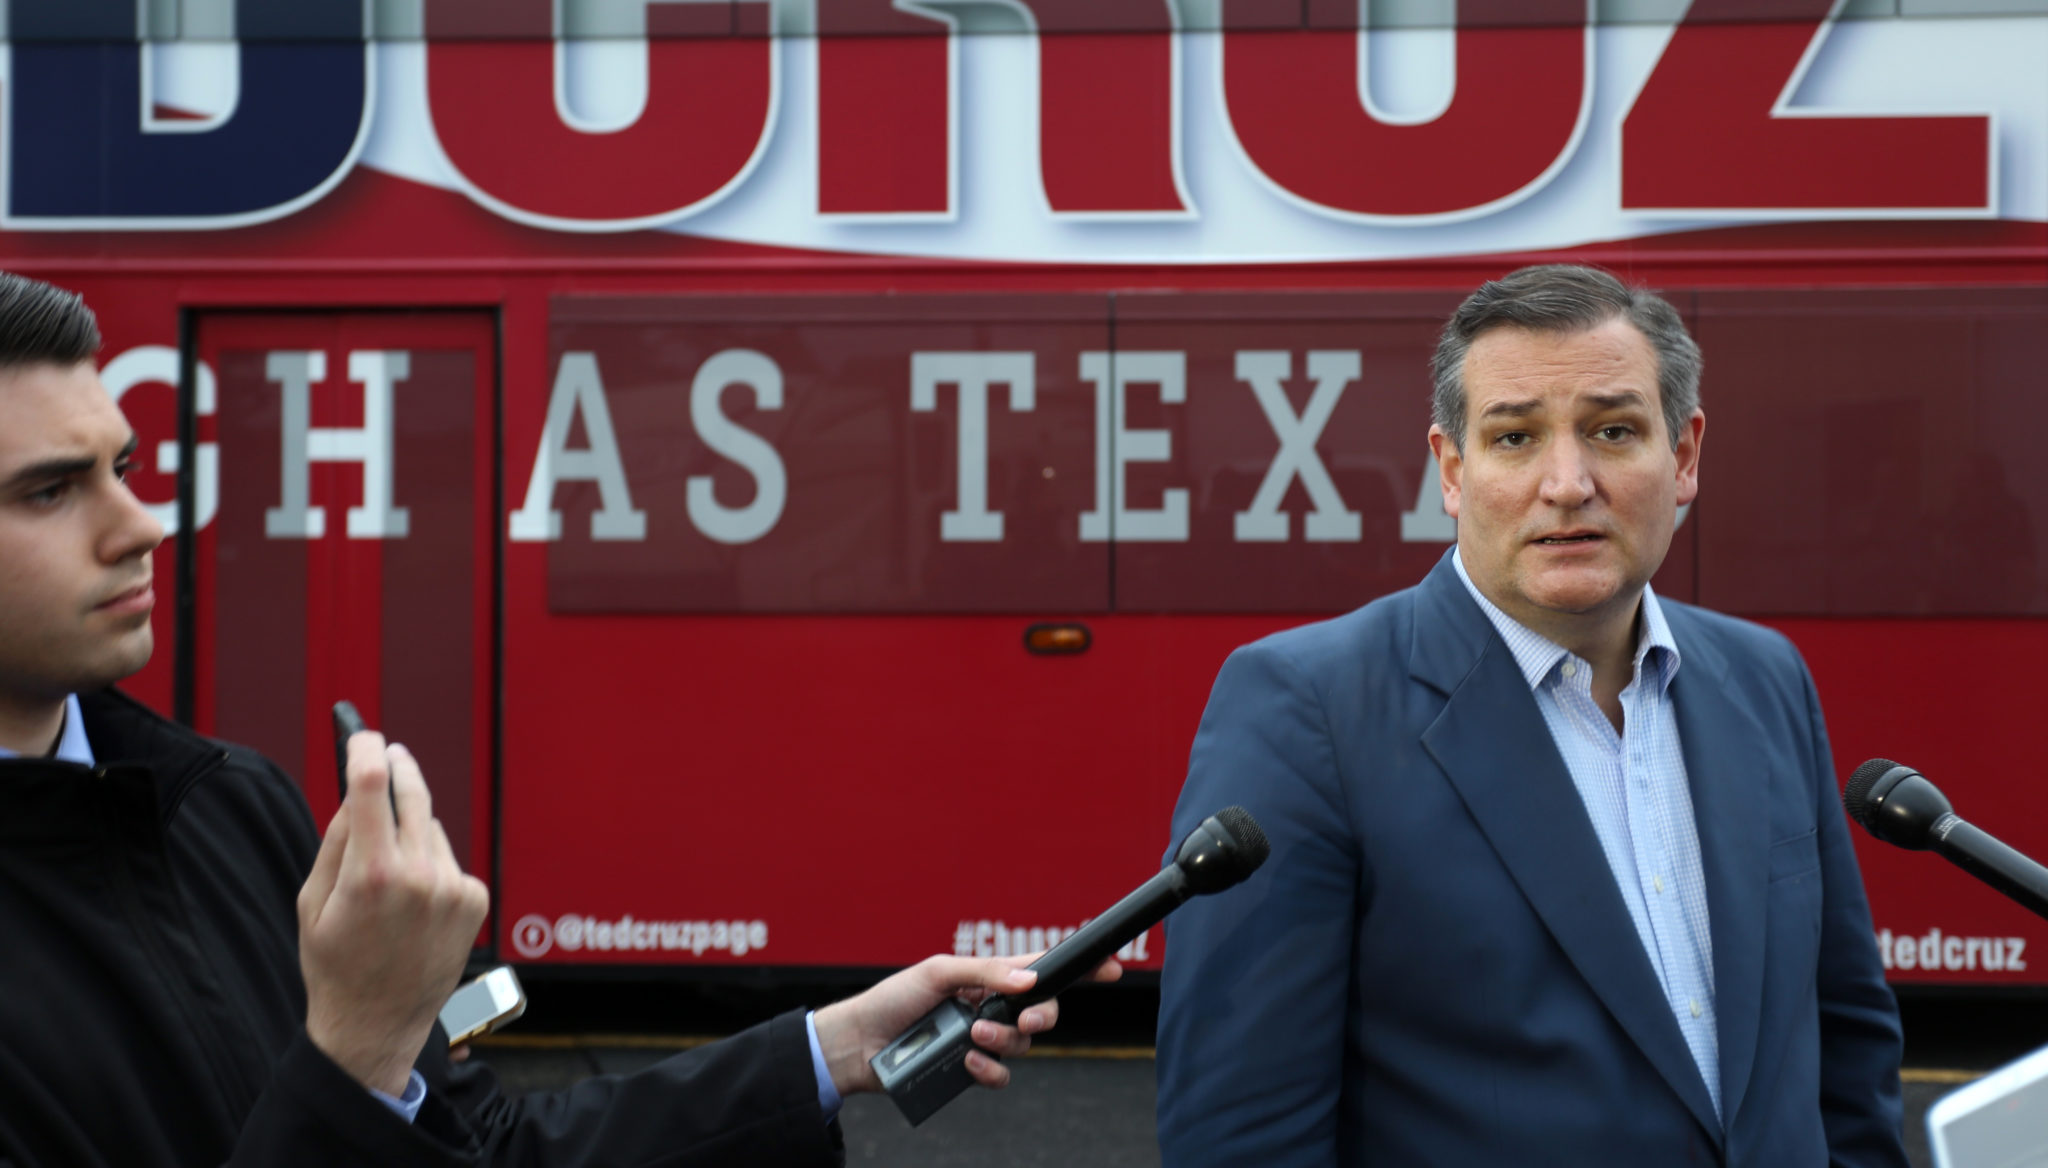 TED CRUZ NOW UNDER INVESTIGATION, GOP IN A PANIC